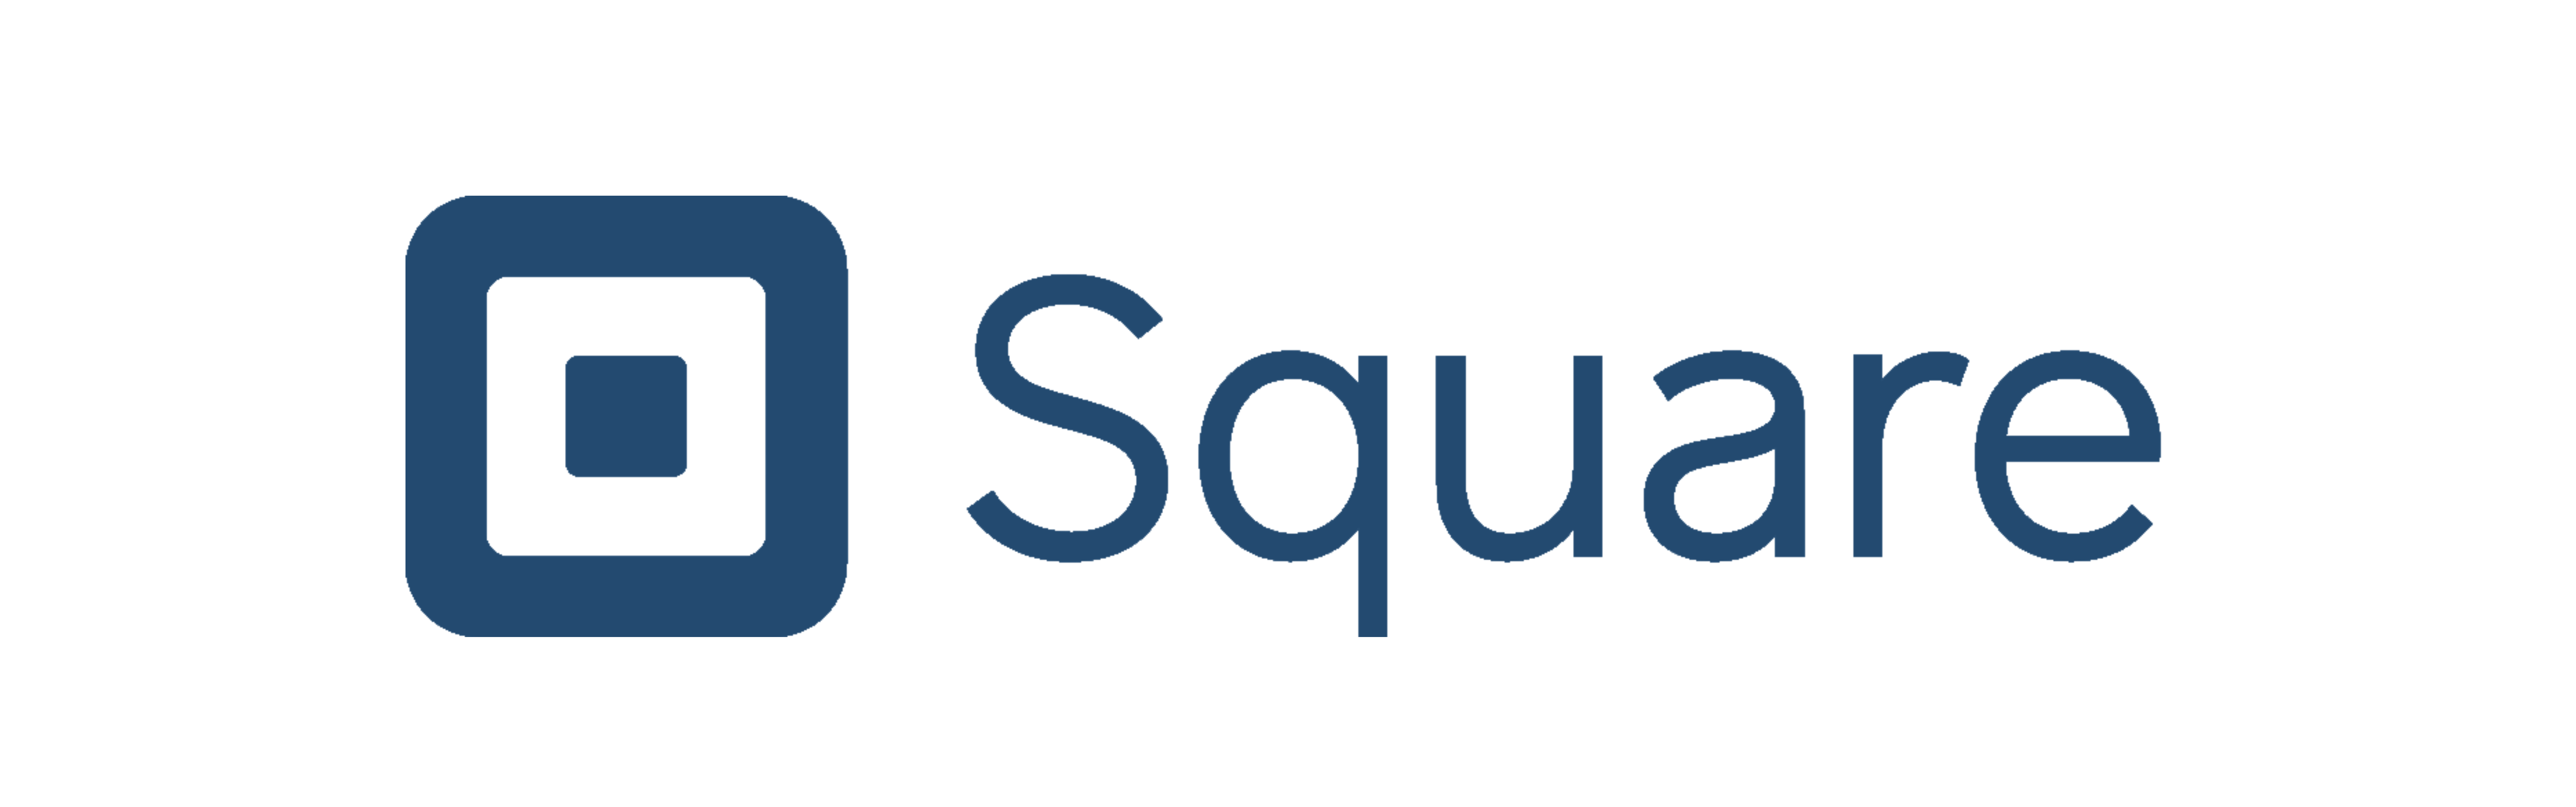 automated payment system - square